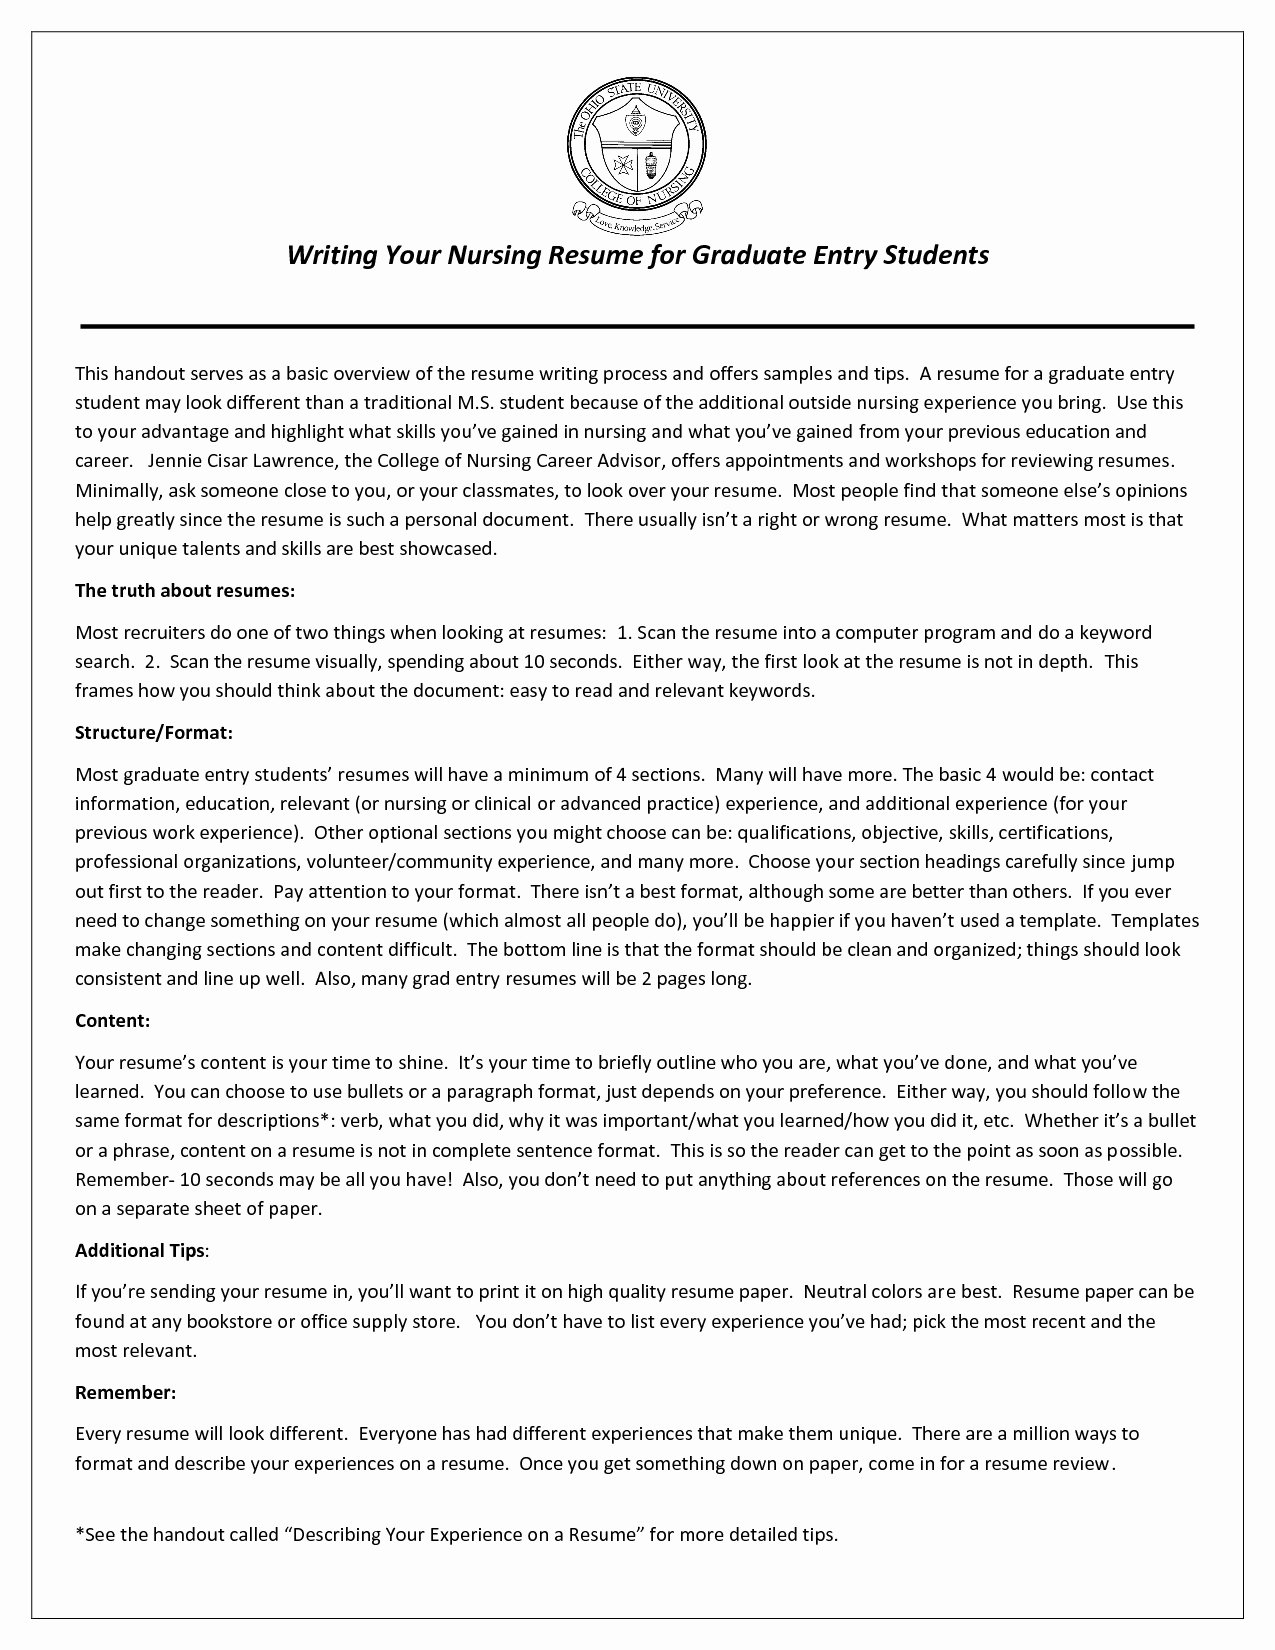 Curriculum Vitae Samples for Nurse Practitioner Nursing